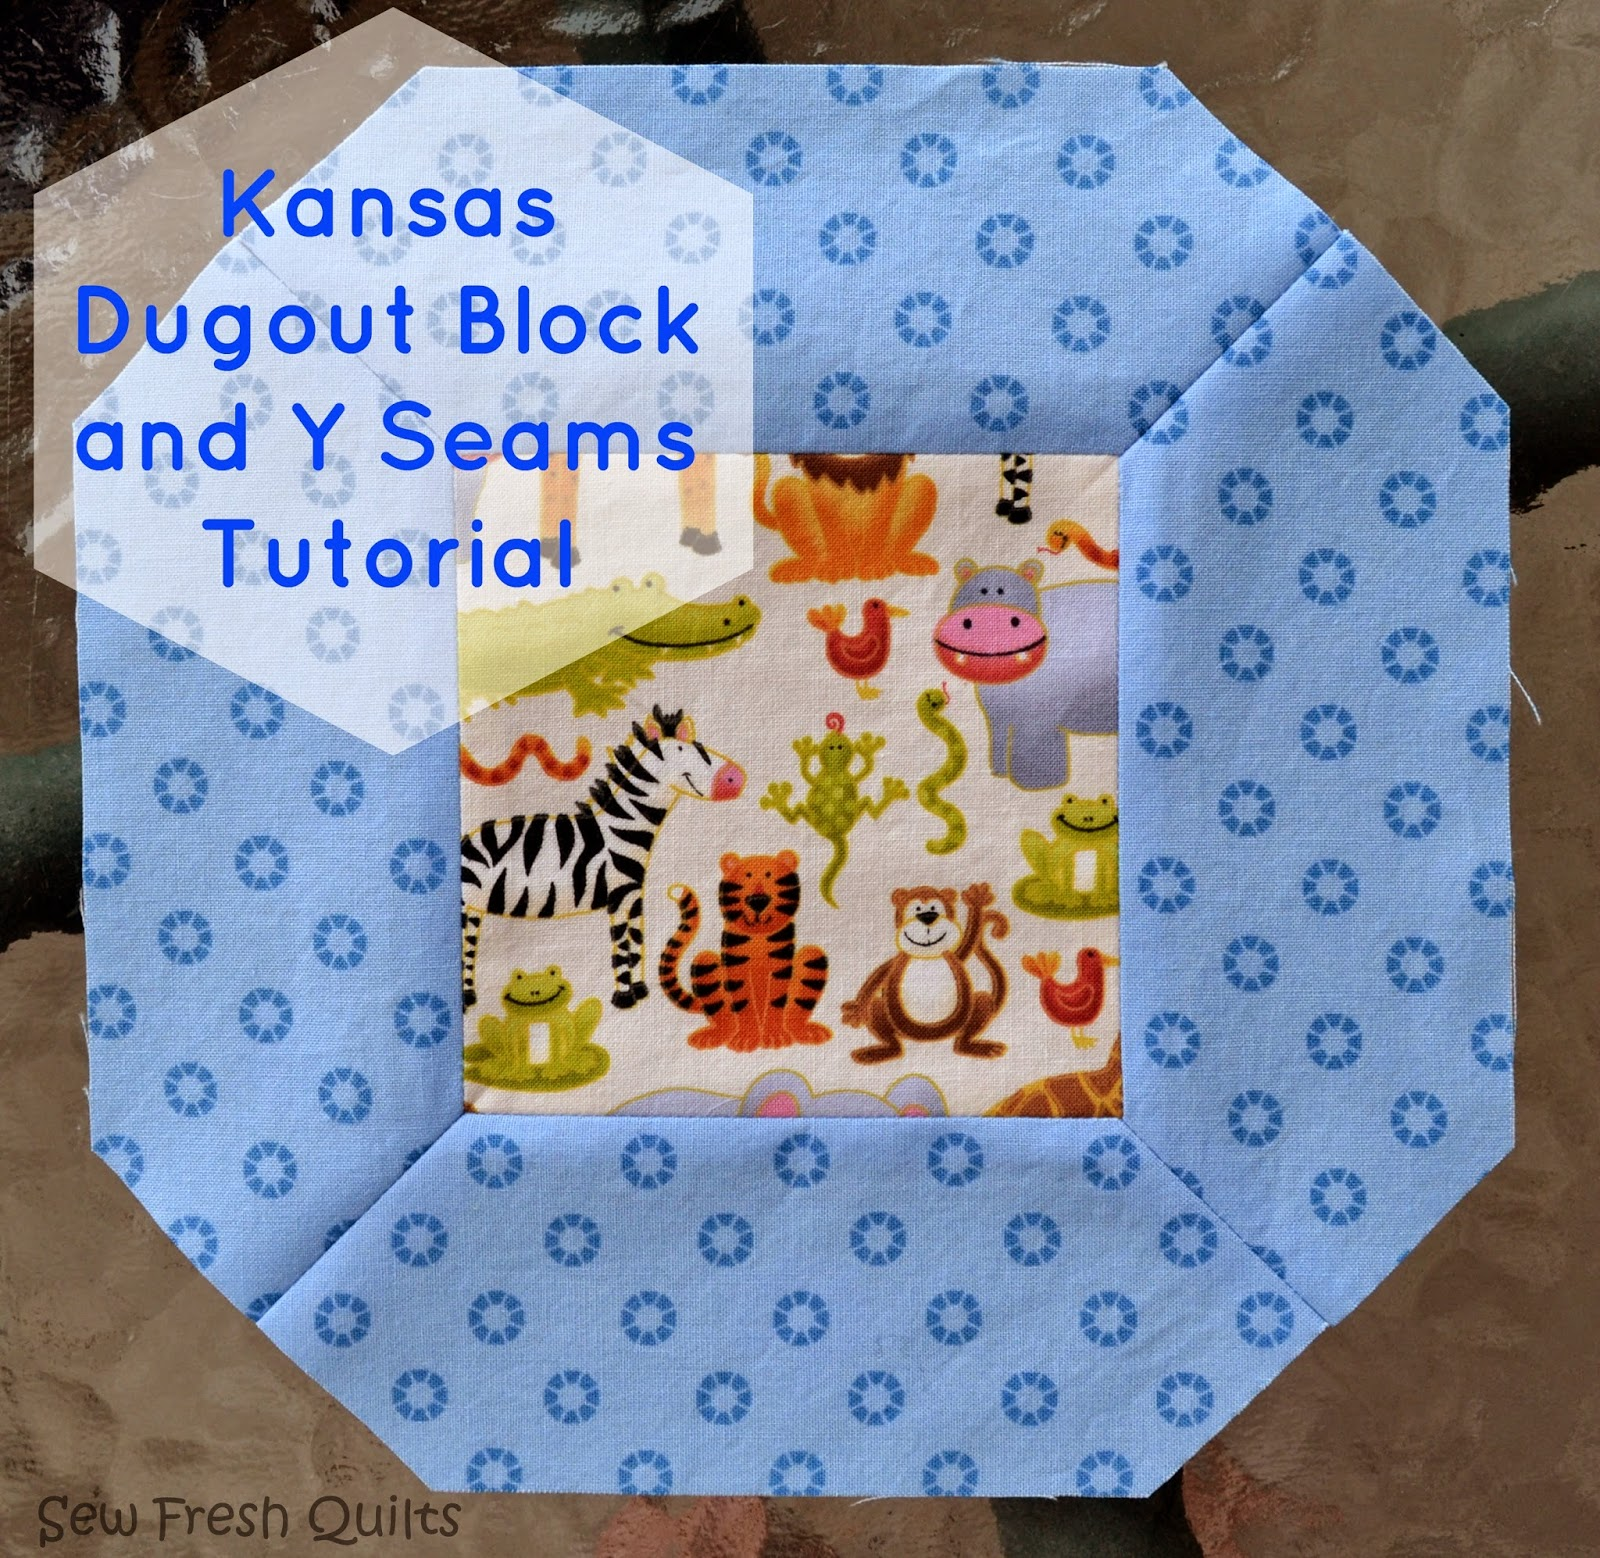 http://sewfreshquilts.blogspot.ca/2014/04/kansas-dugout-quilt-block-and-y-seam.html